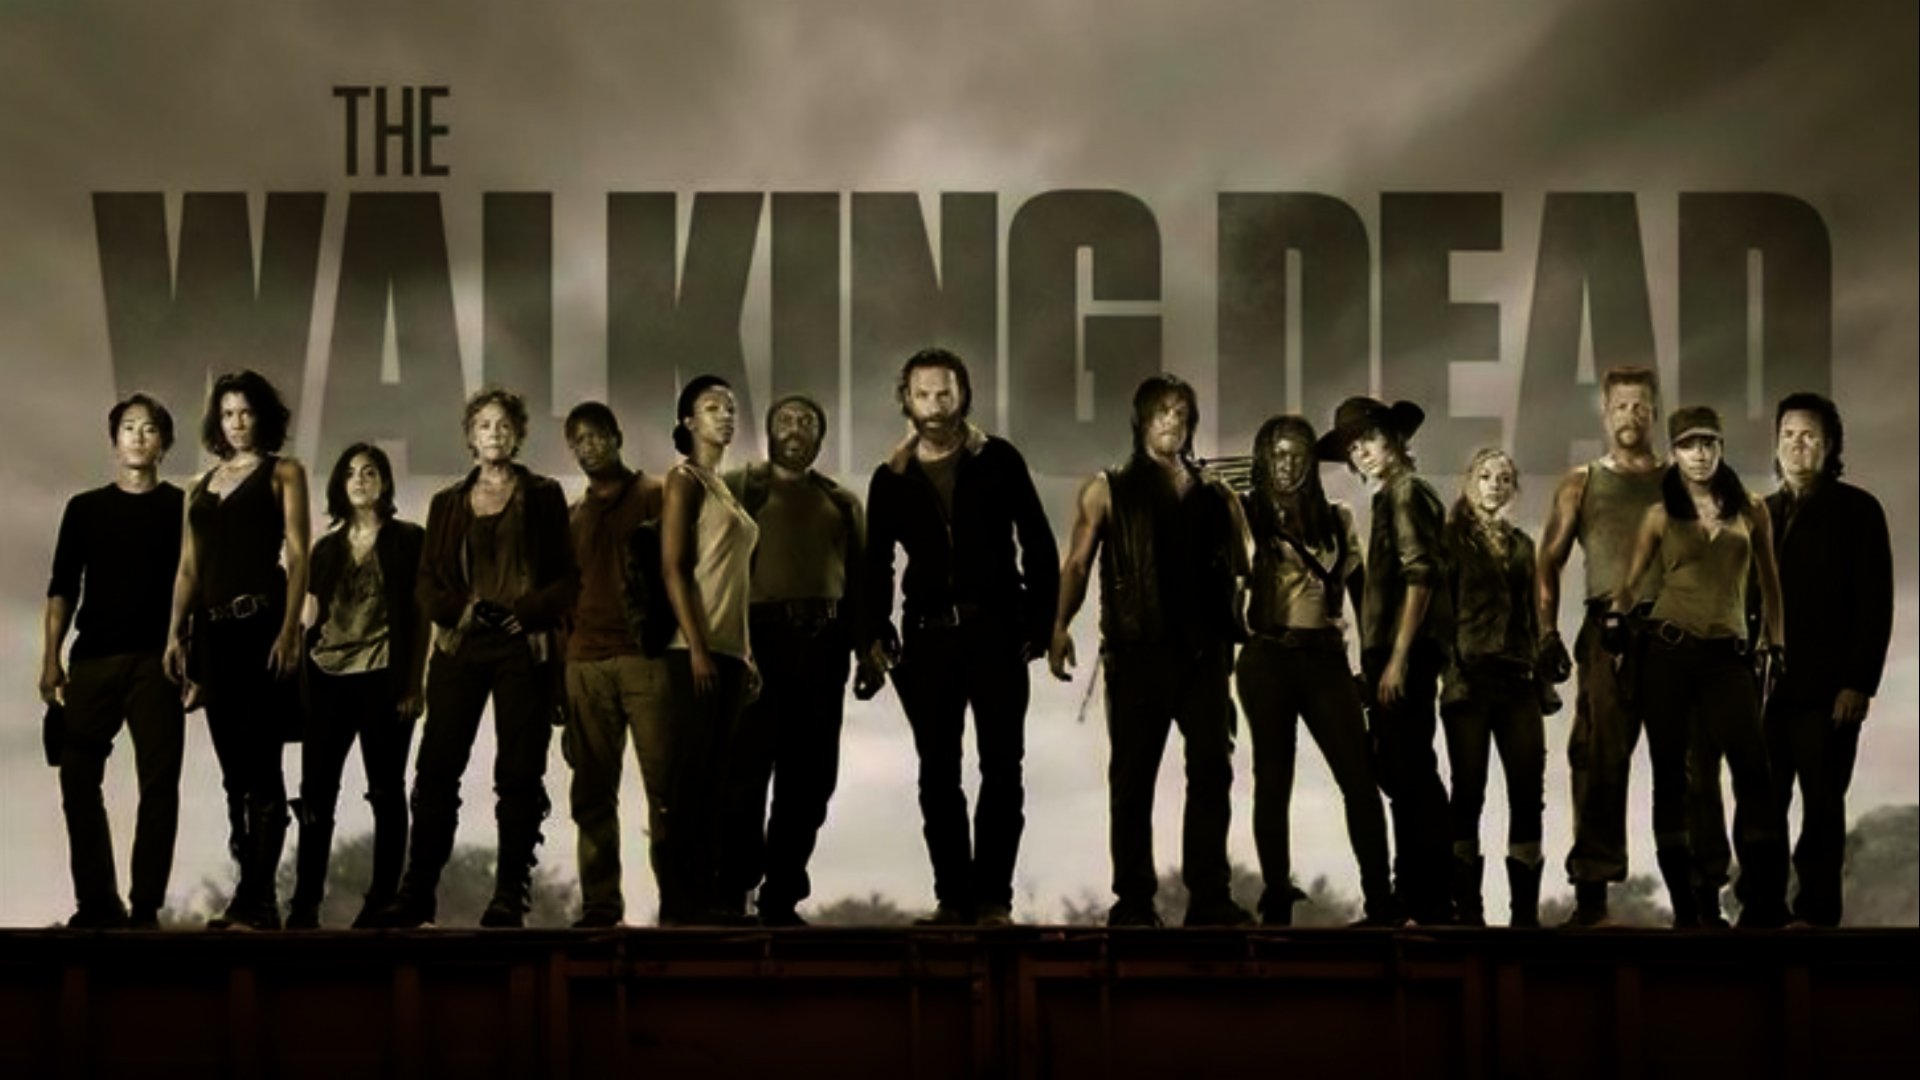 TV Show - The Walking Dead  Danai Gurira Andrew Lincoln Rick Grimes Norman Reedus Carl Grimes Michonne (The Walking Dead) Chandler Riggs Wallpaper